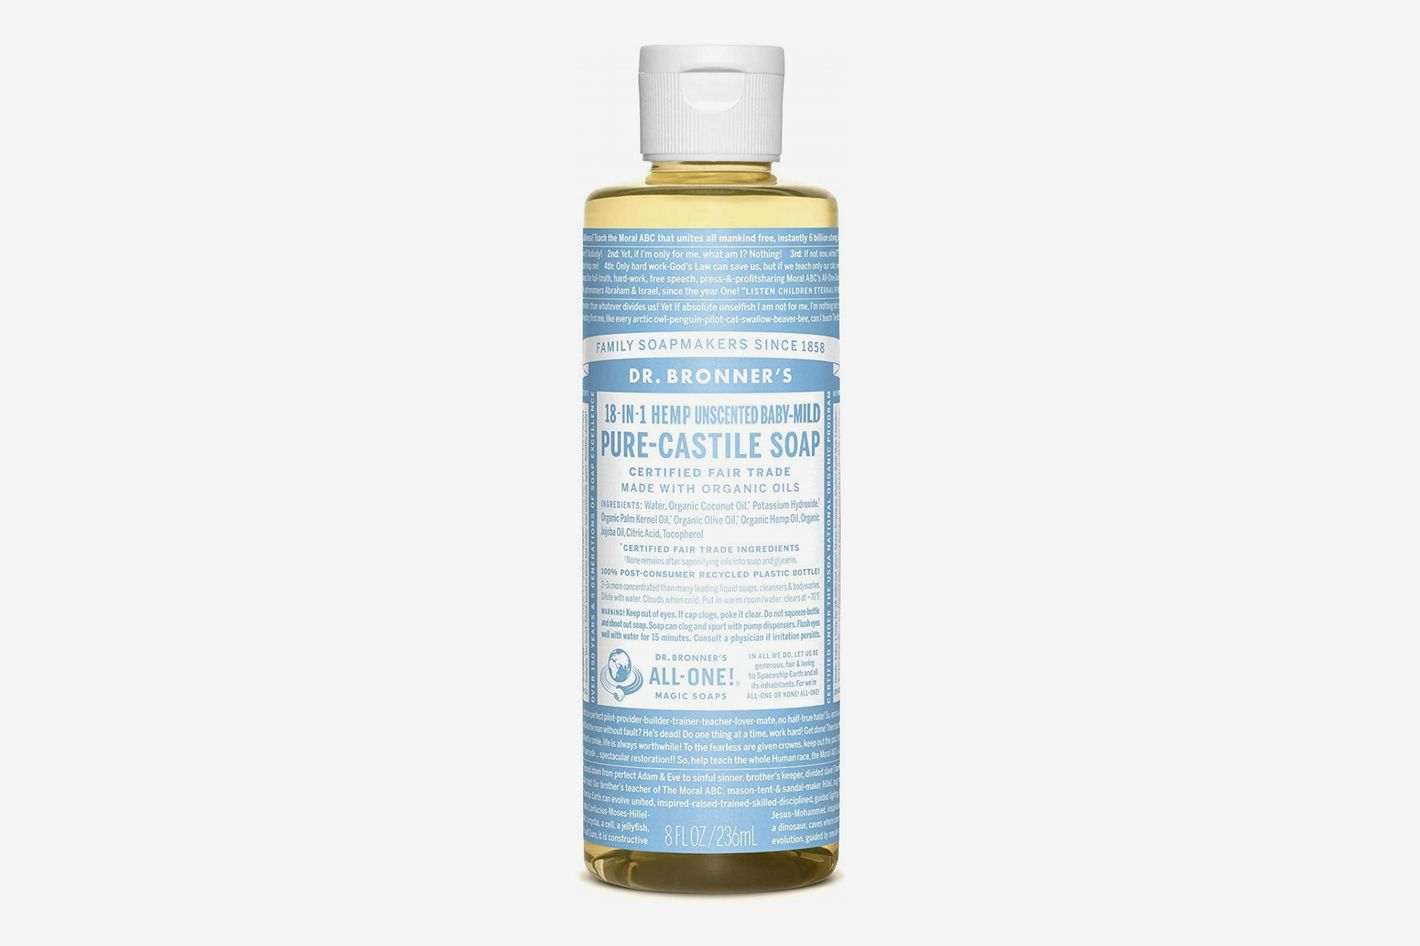 Dr. Bronner's 18-In-1 Hemp Unscented Baby-Mild Pure-Castile Soap